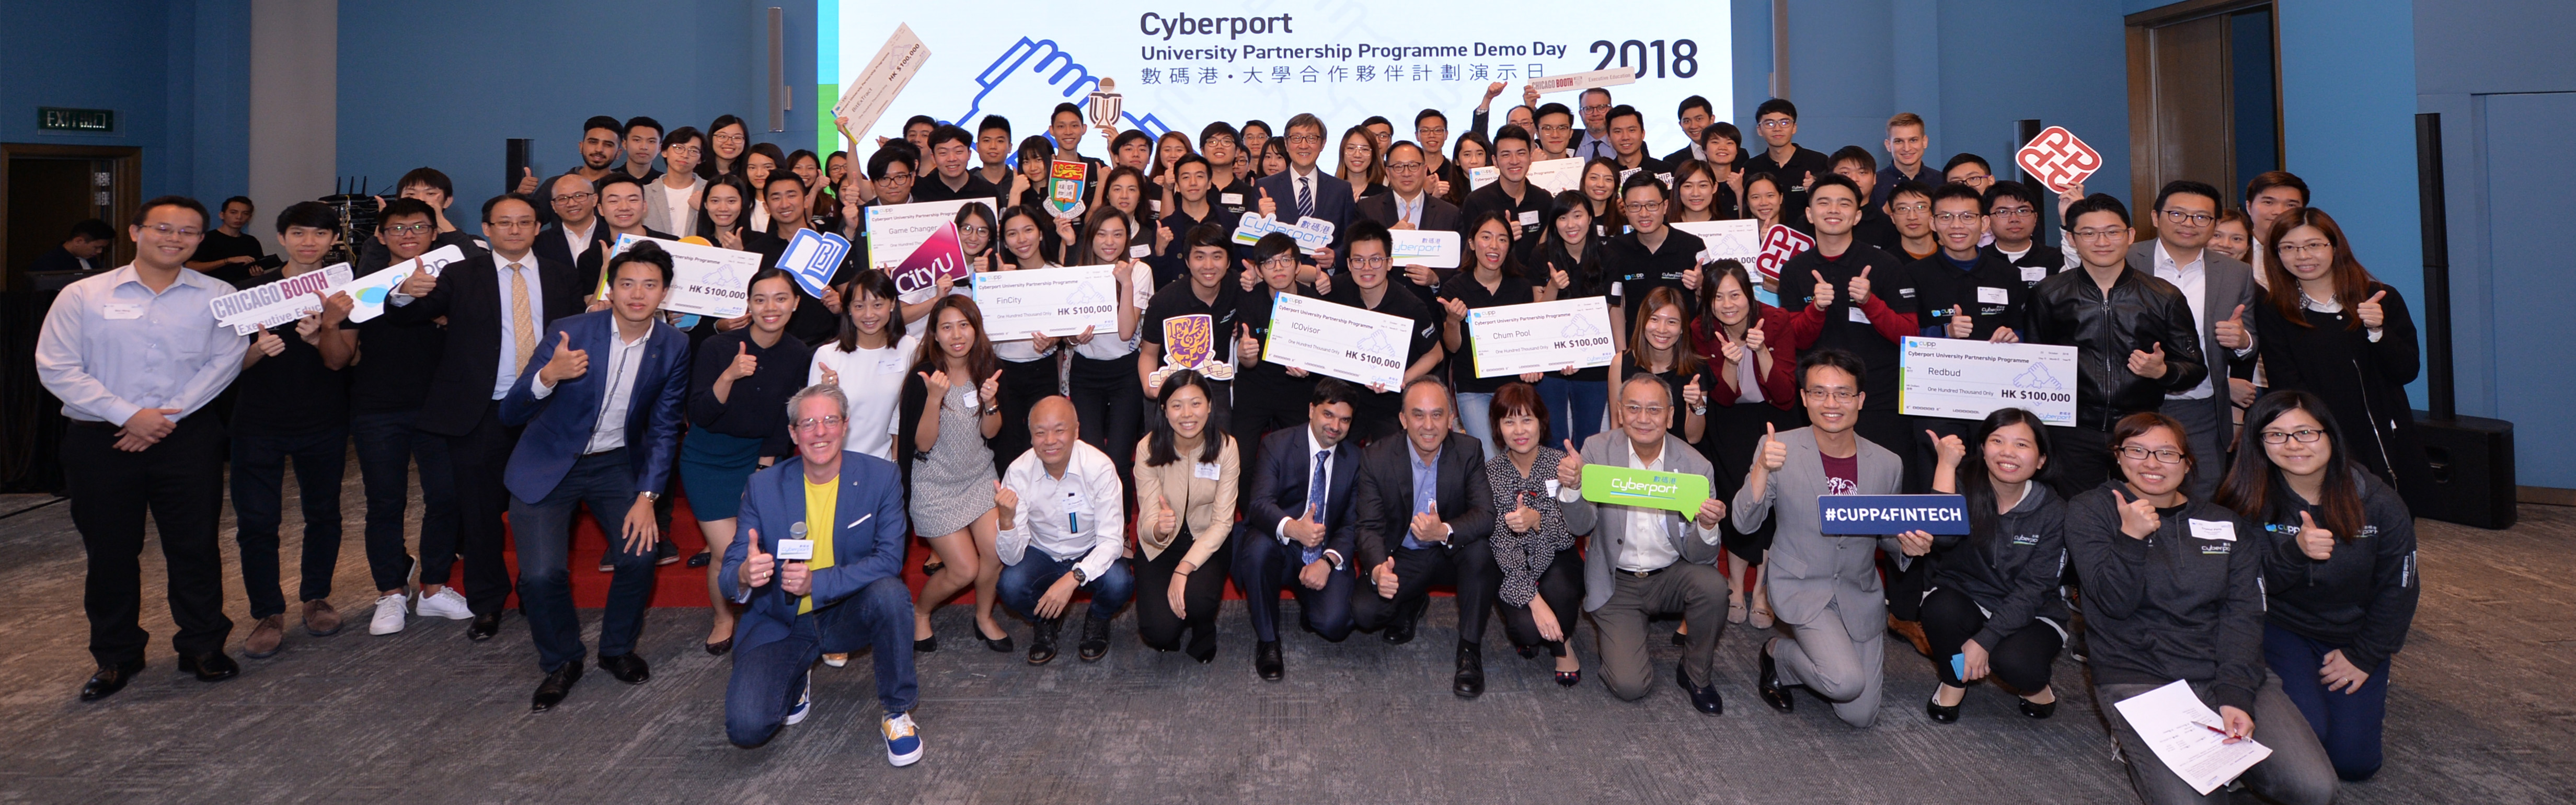 Cyberport University Partnership Programme (CUPP) 2018